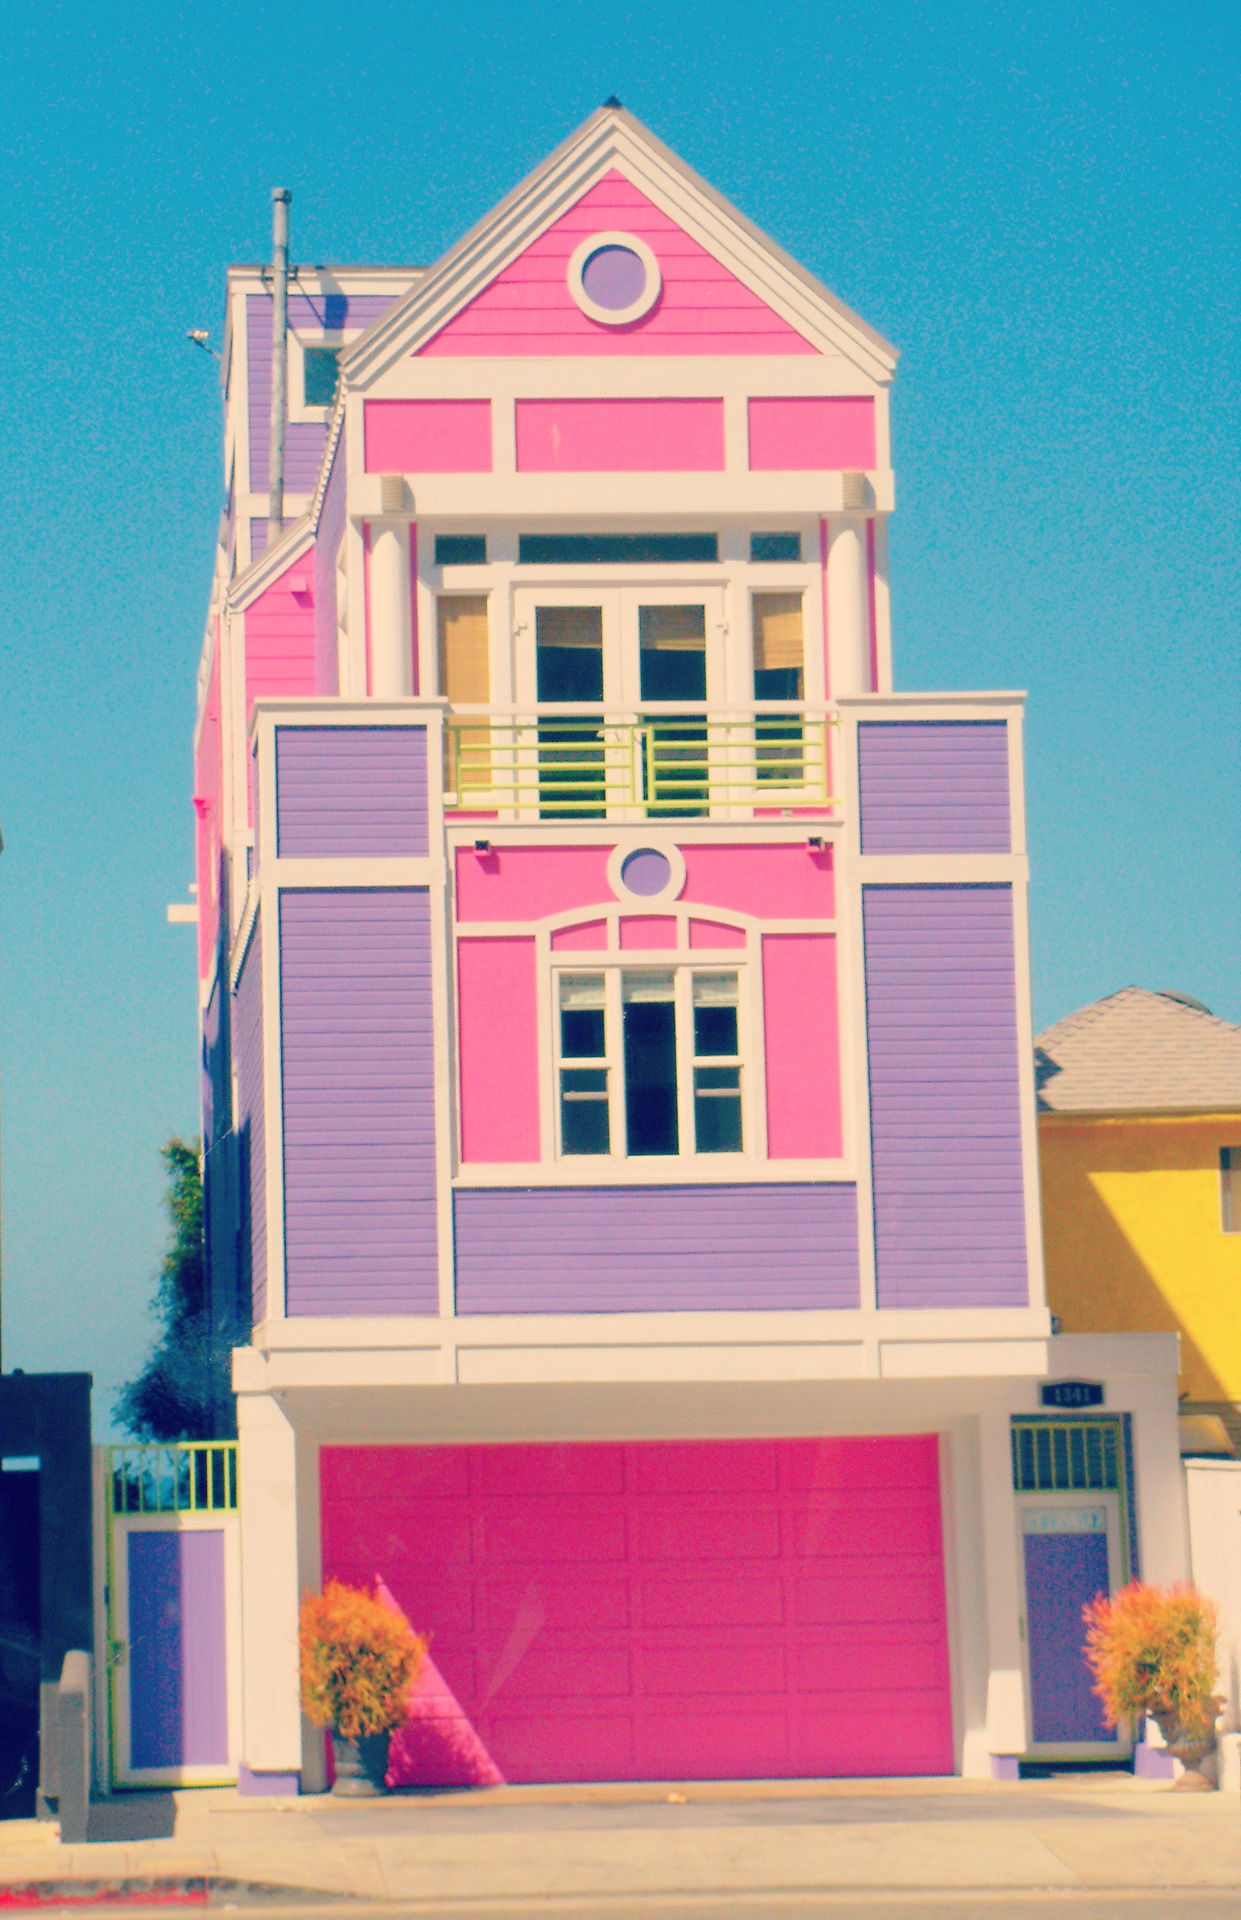 ashleyswagner:   House of Ruth Handler creator of Barbie in Santa Monica, L.A. California.  :3